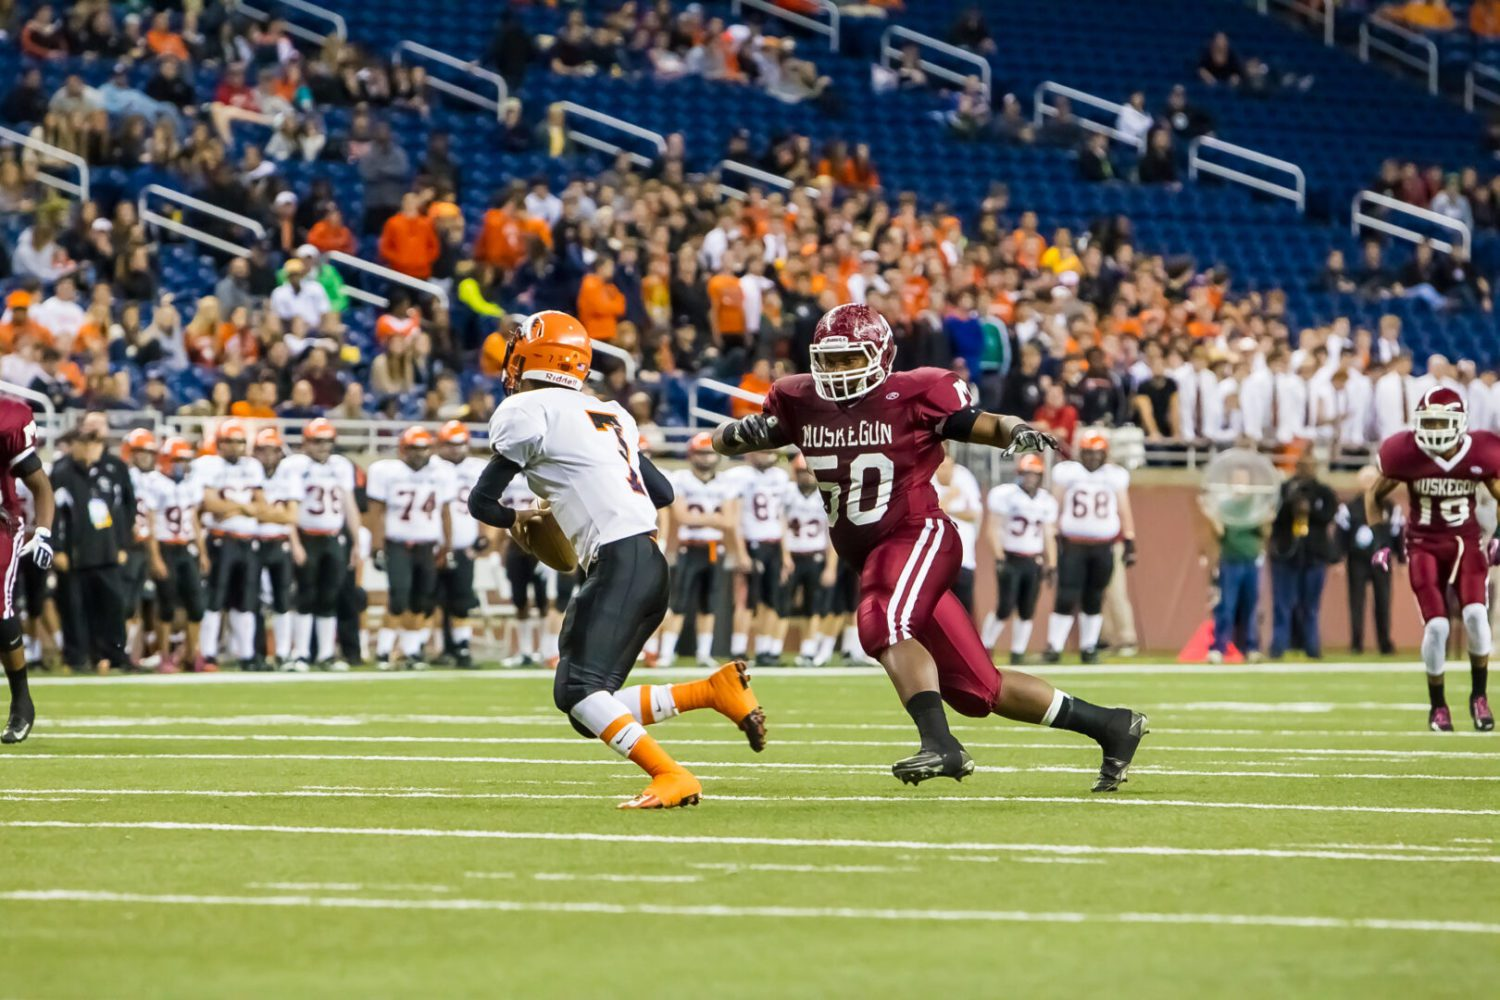 Big plays decide Division 2 state football final game [VIDEO]